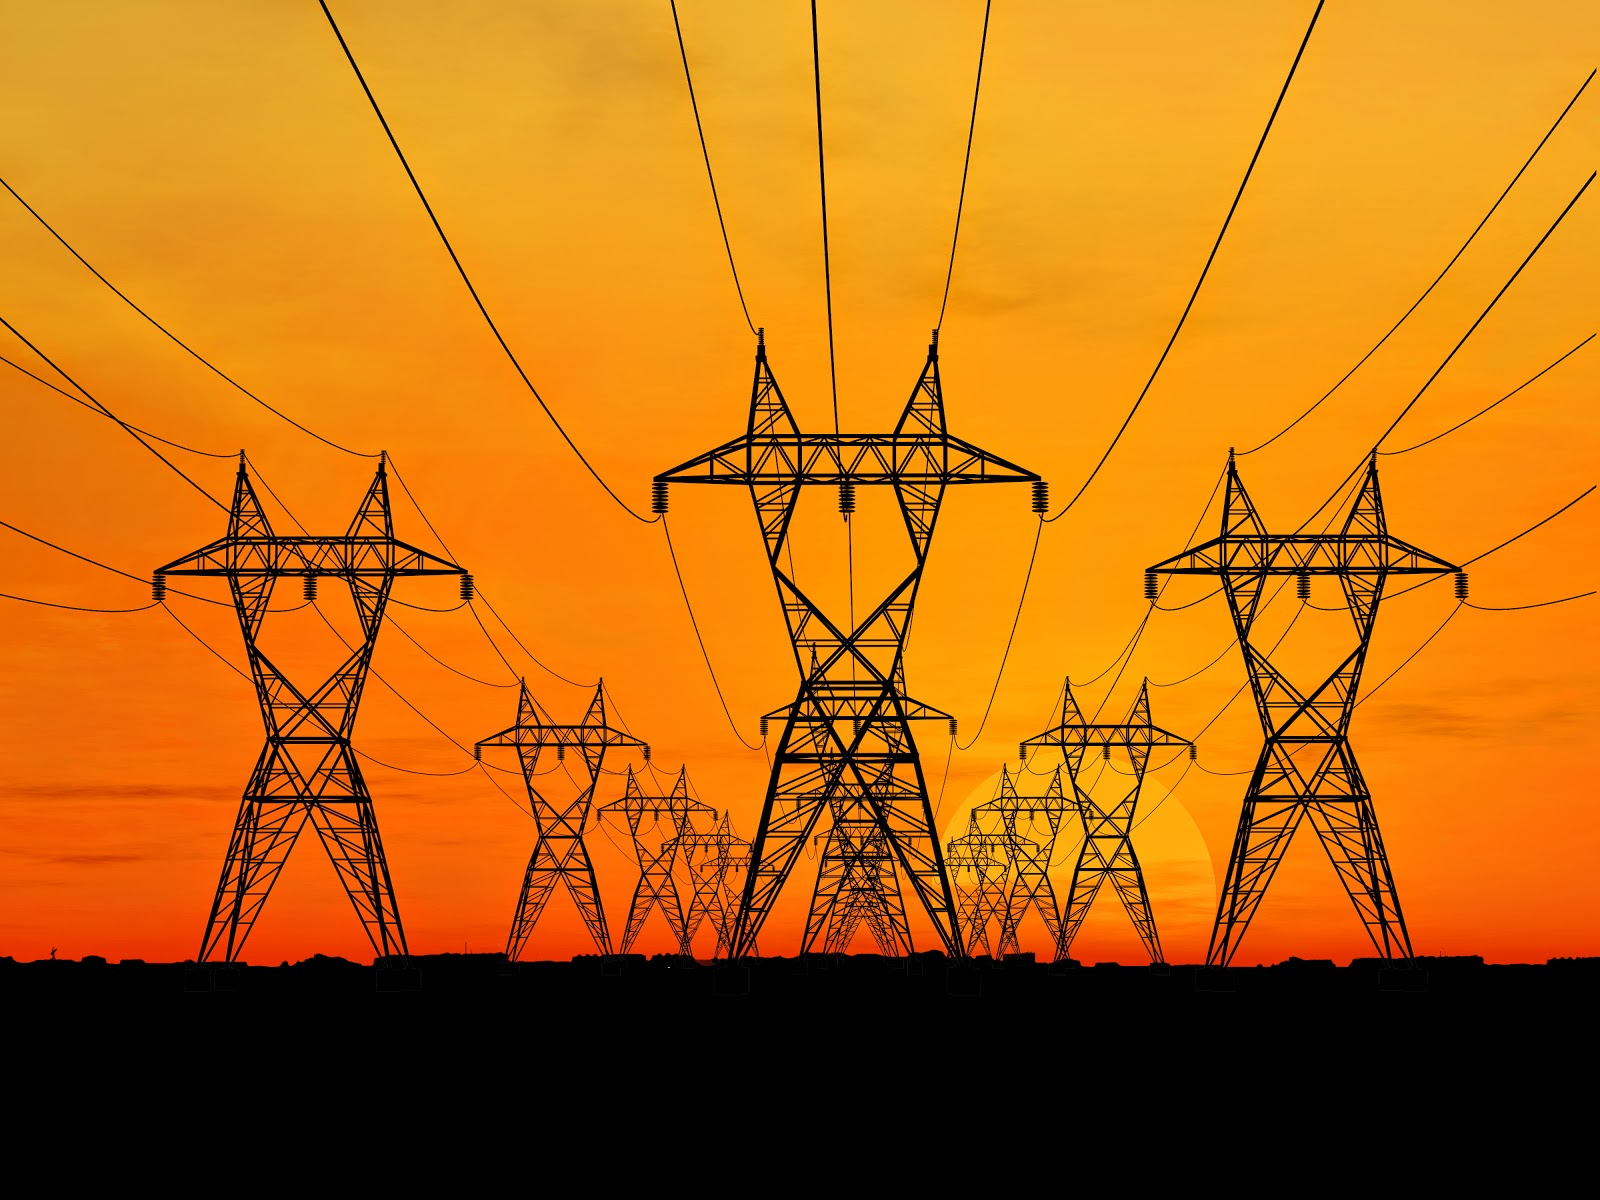 power grid investment, which accounts for 47% of China's copper demand